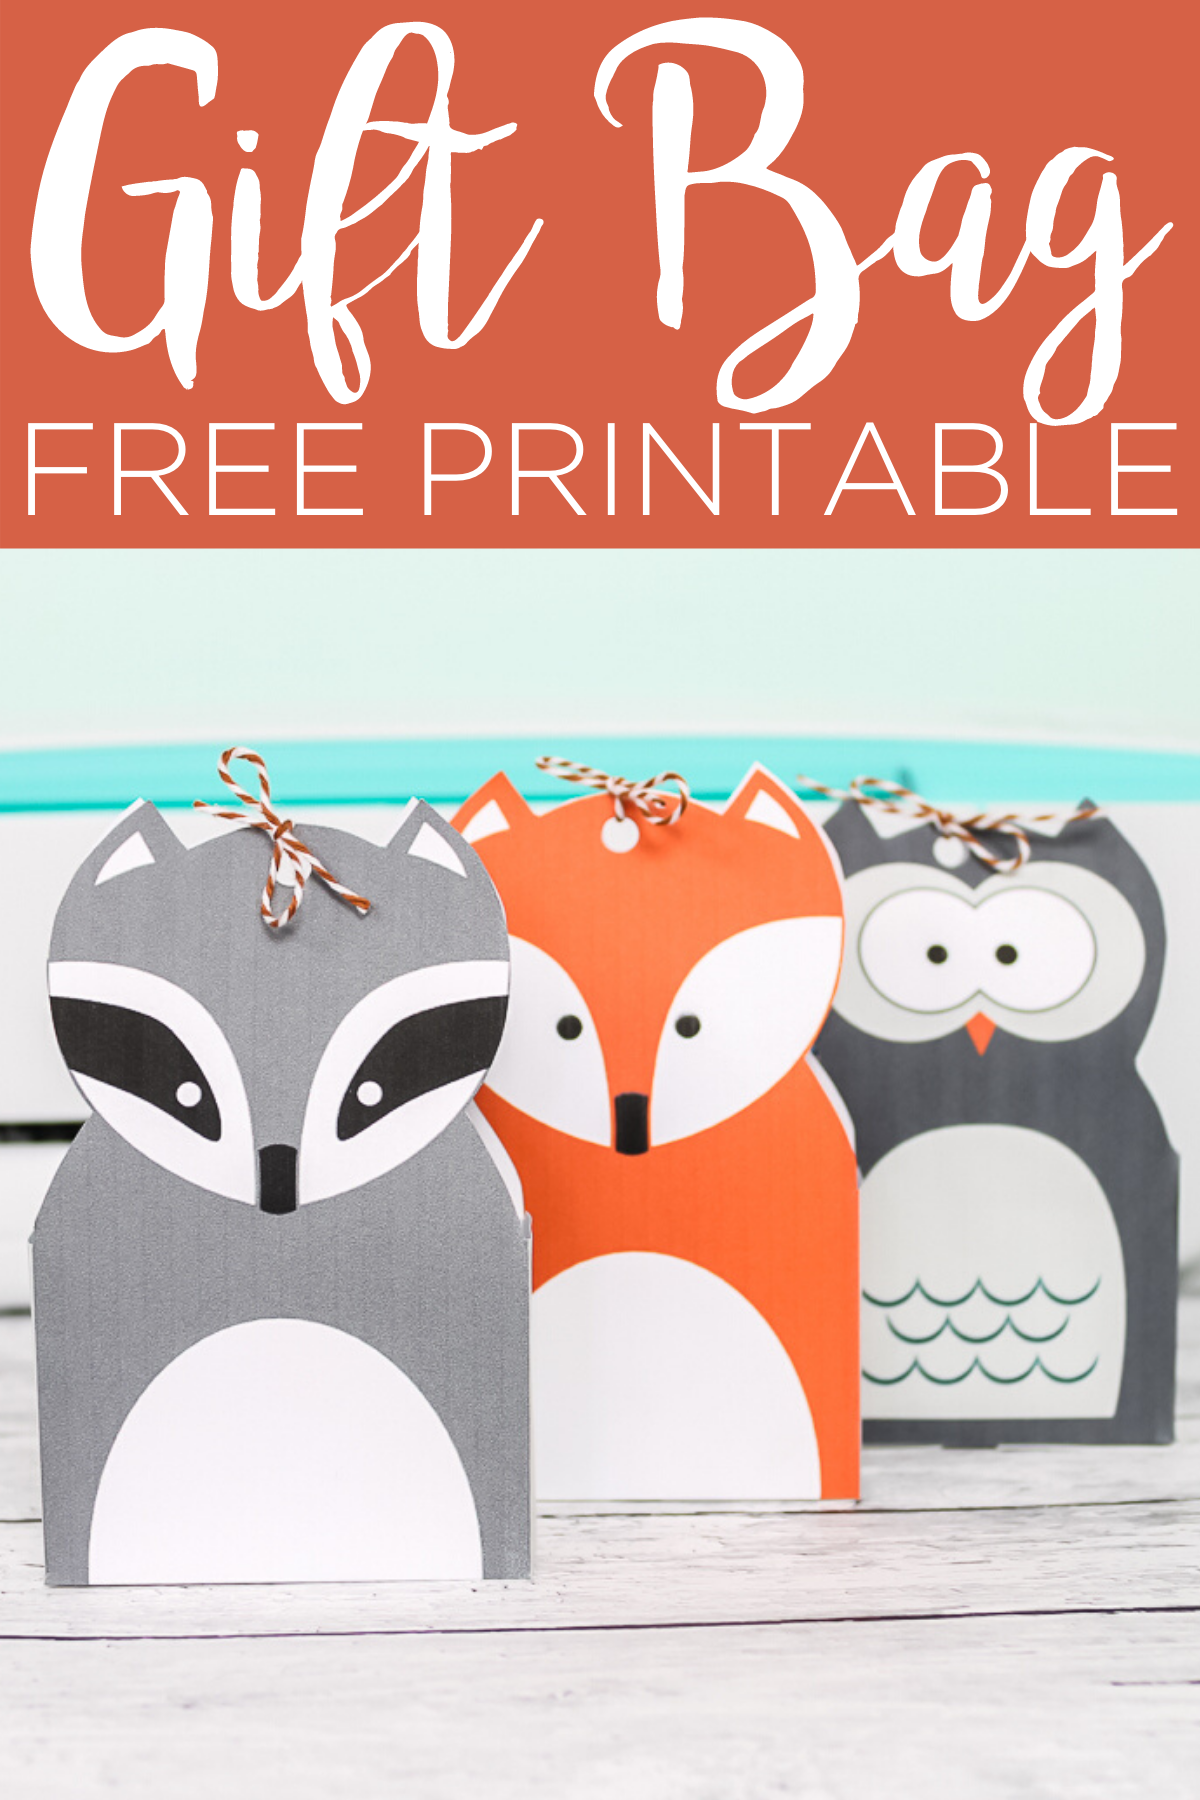 These printable gift bags are perfect for baby showers, parties, and so much more! Print these woodland animals then assemble them into little favor or gift bags that everyone will love. #printable #freeprintable #giftbags #woodland #woodlandanimals #owl #raccoon #fox